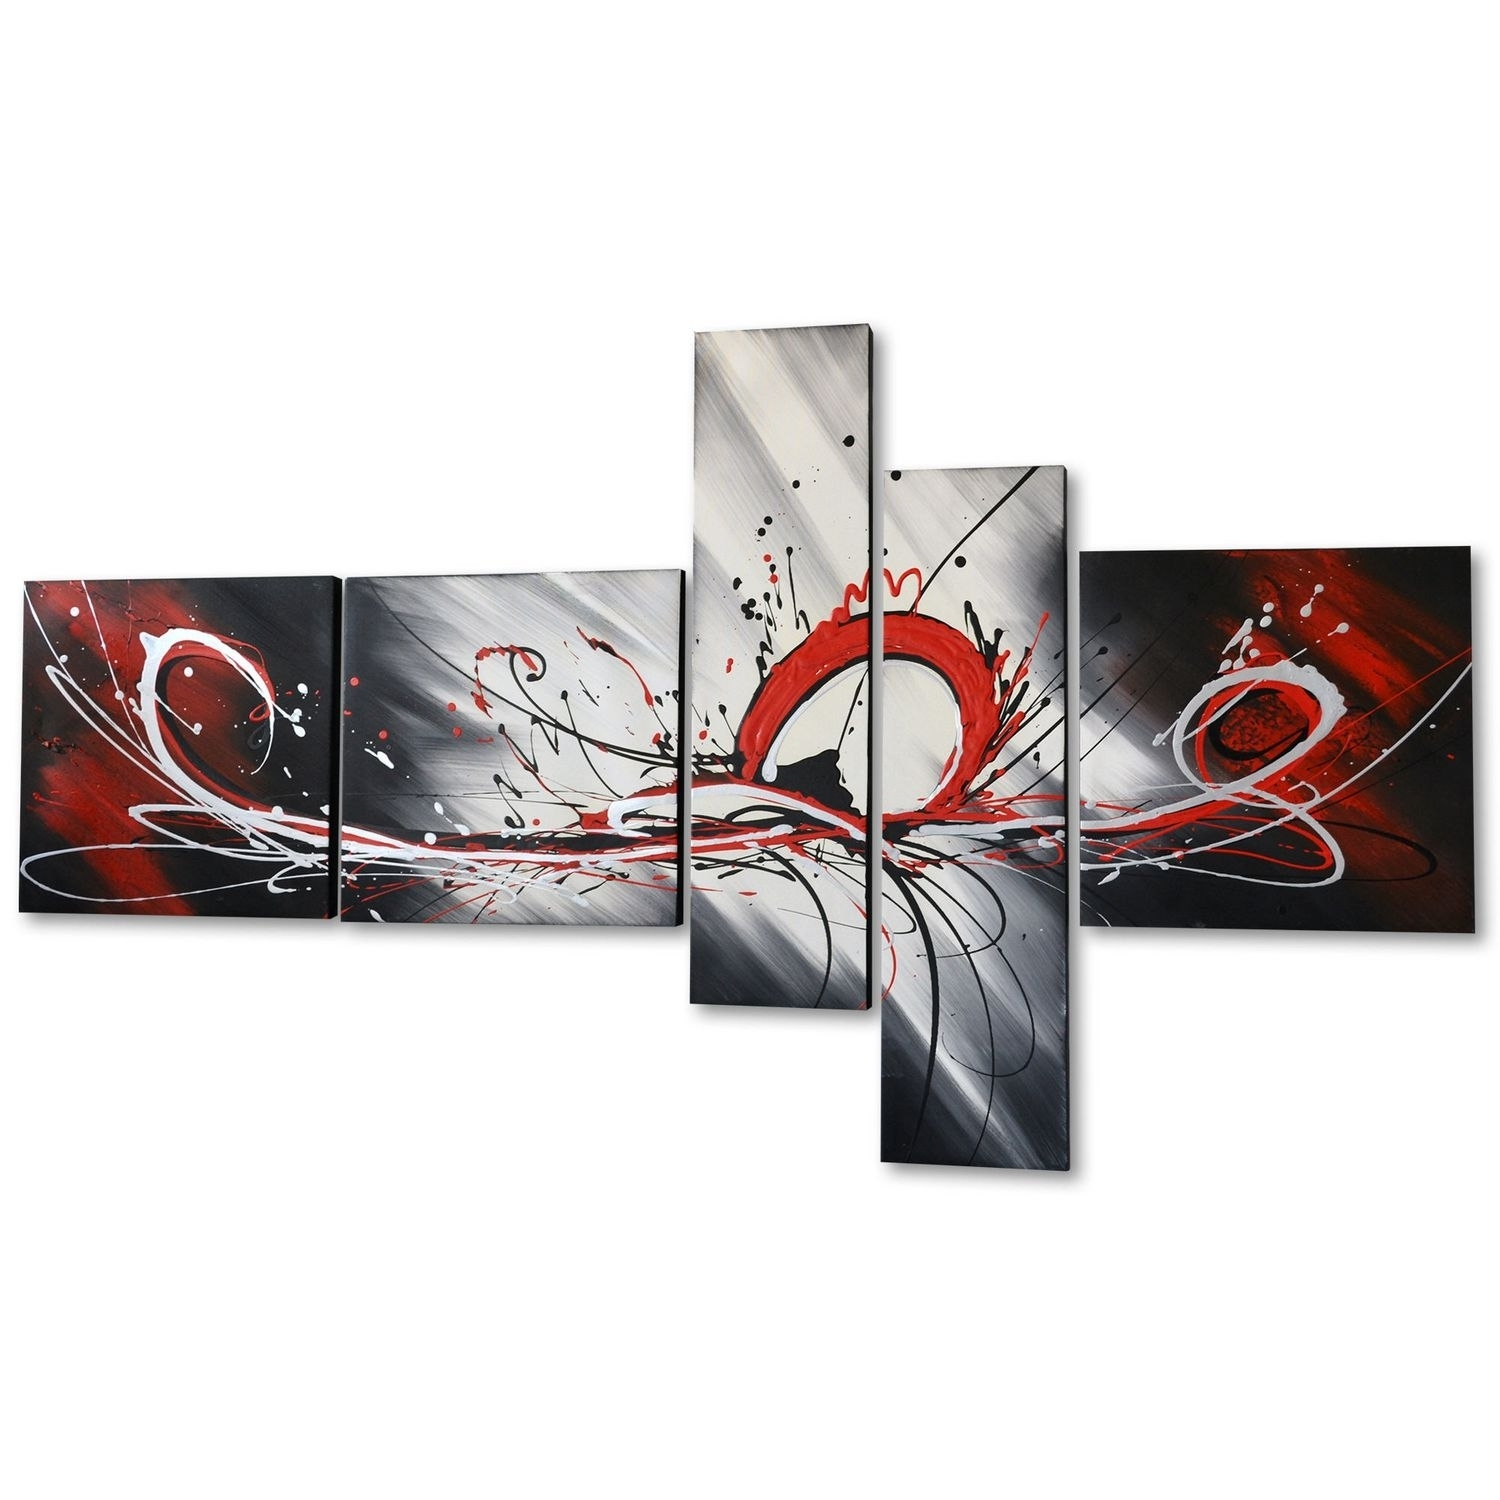 New Canvas Wall Art Walmart | Wall Decorations Pertaining To Current Wall Art At Walmart (View 13 of 20)